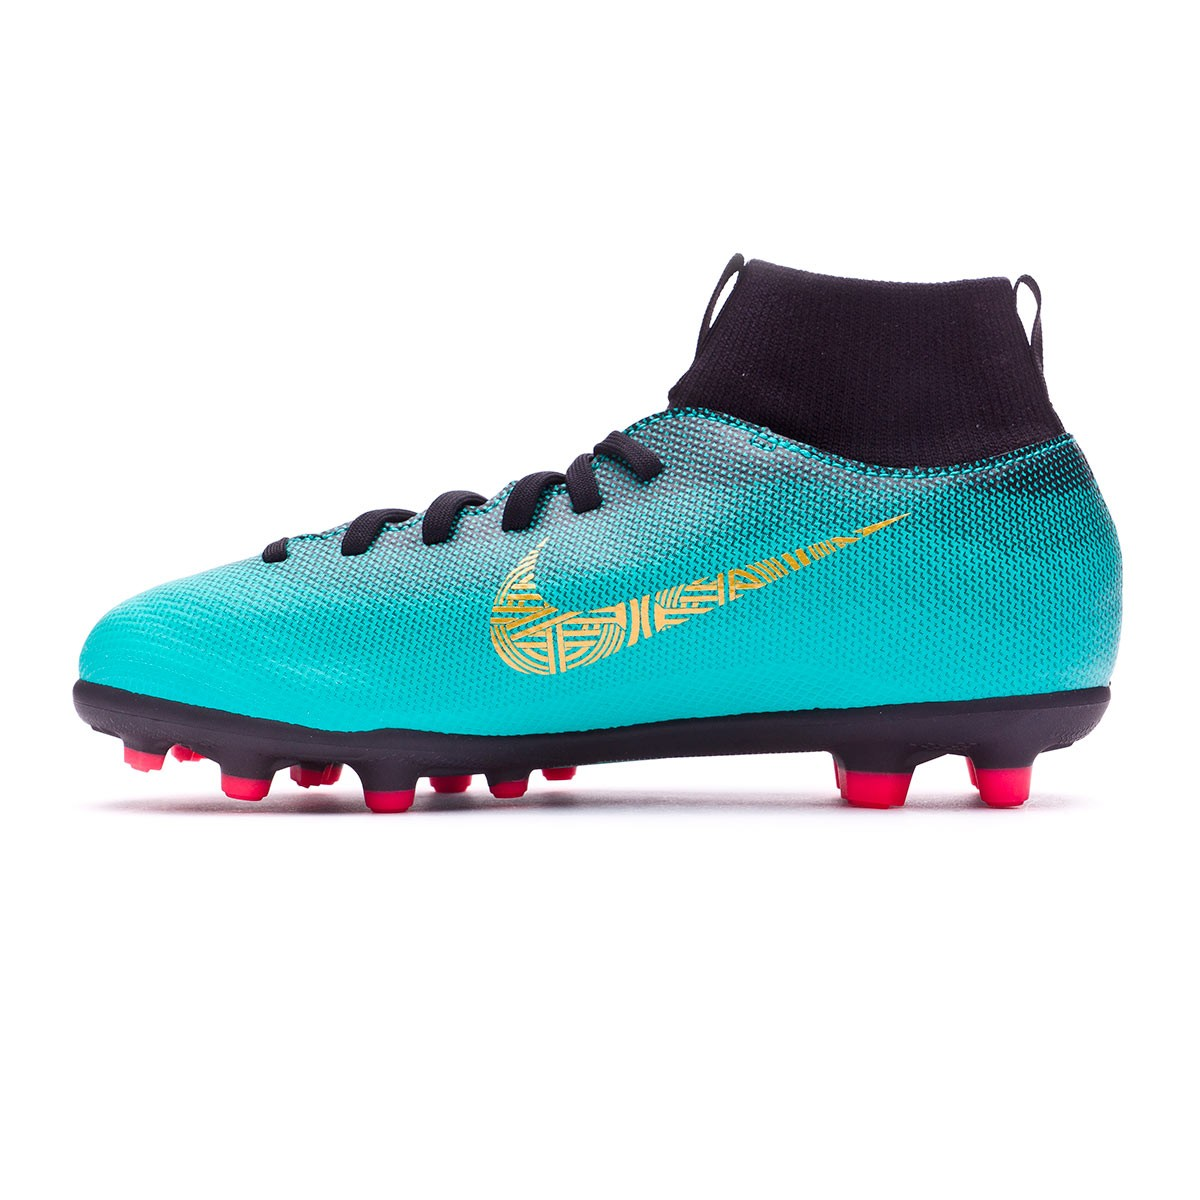 Bota de fútbol Nike Mercurial Superfly VI Club CR7 MG Niño Clear  jade-Metallic vivid gold-Black - Soloporteros es ahora Fútbol Emotion 23d5daa50ef9a